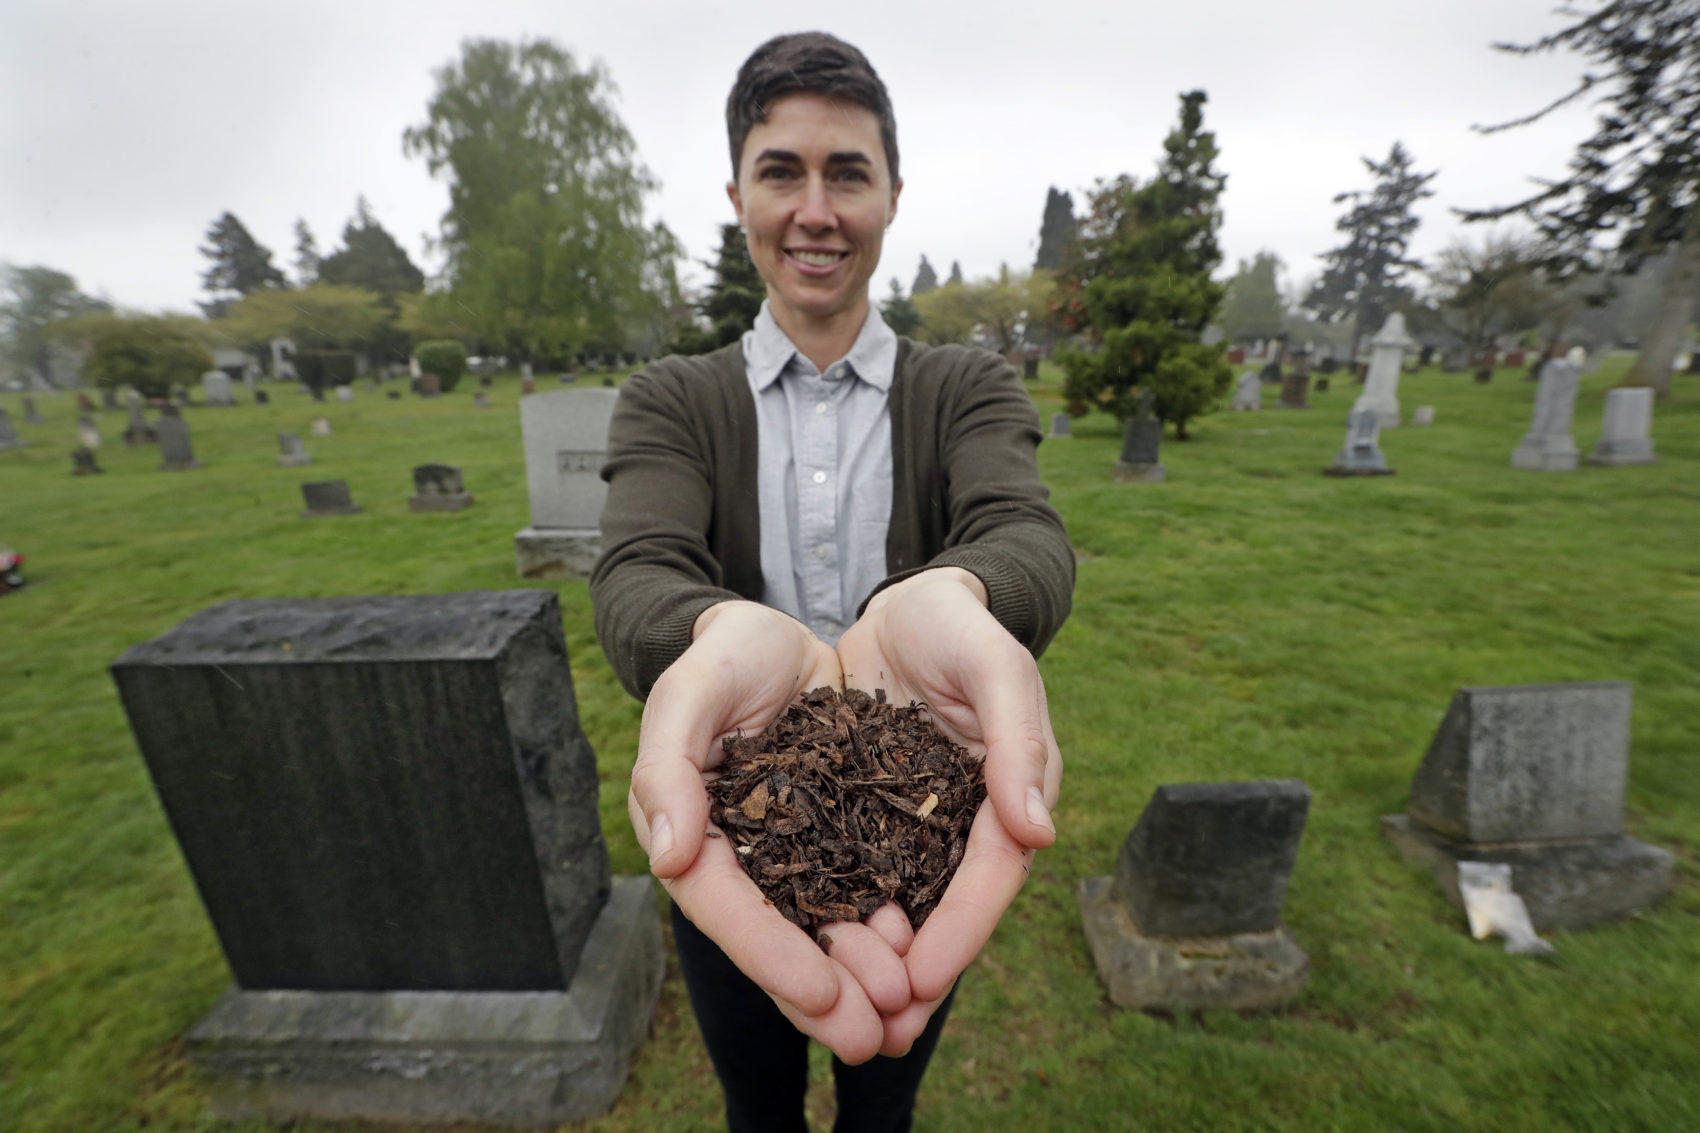 Soil Instead Of Ashes: Human Composting Is About To Become Legal